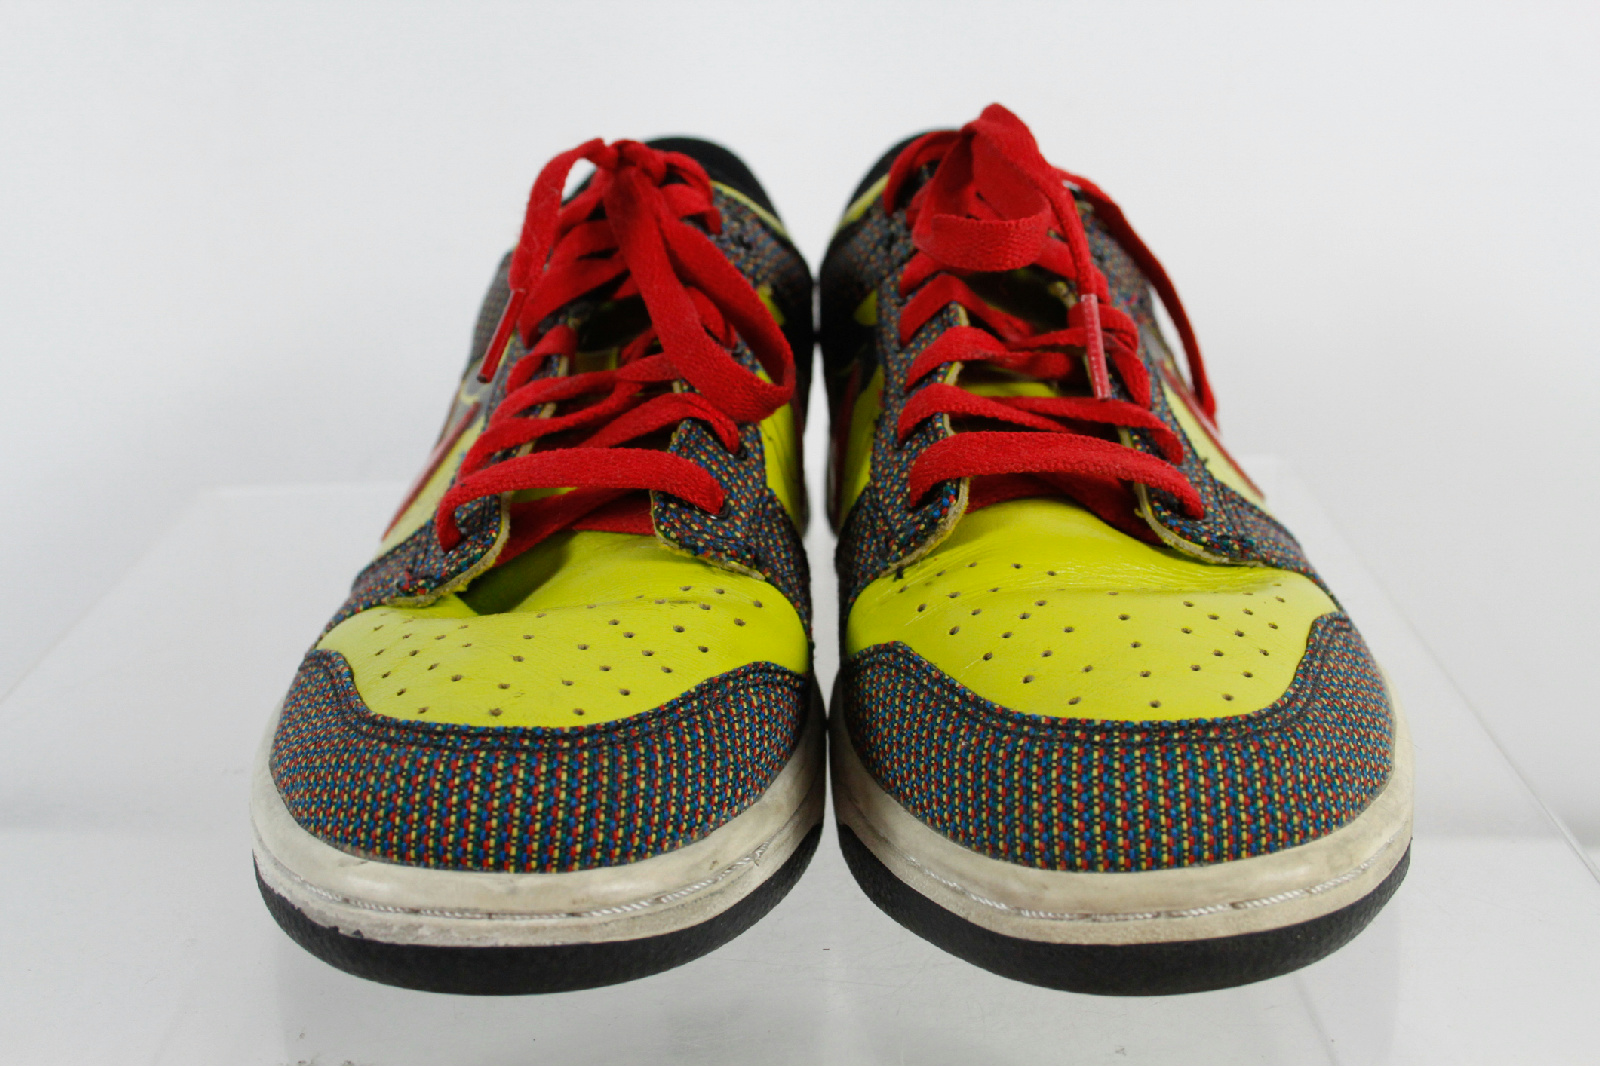 Nike Yellow Red Laces Multi Color Design Low Top Tennis ...